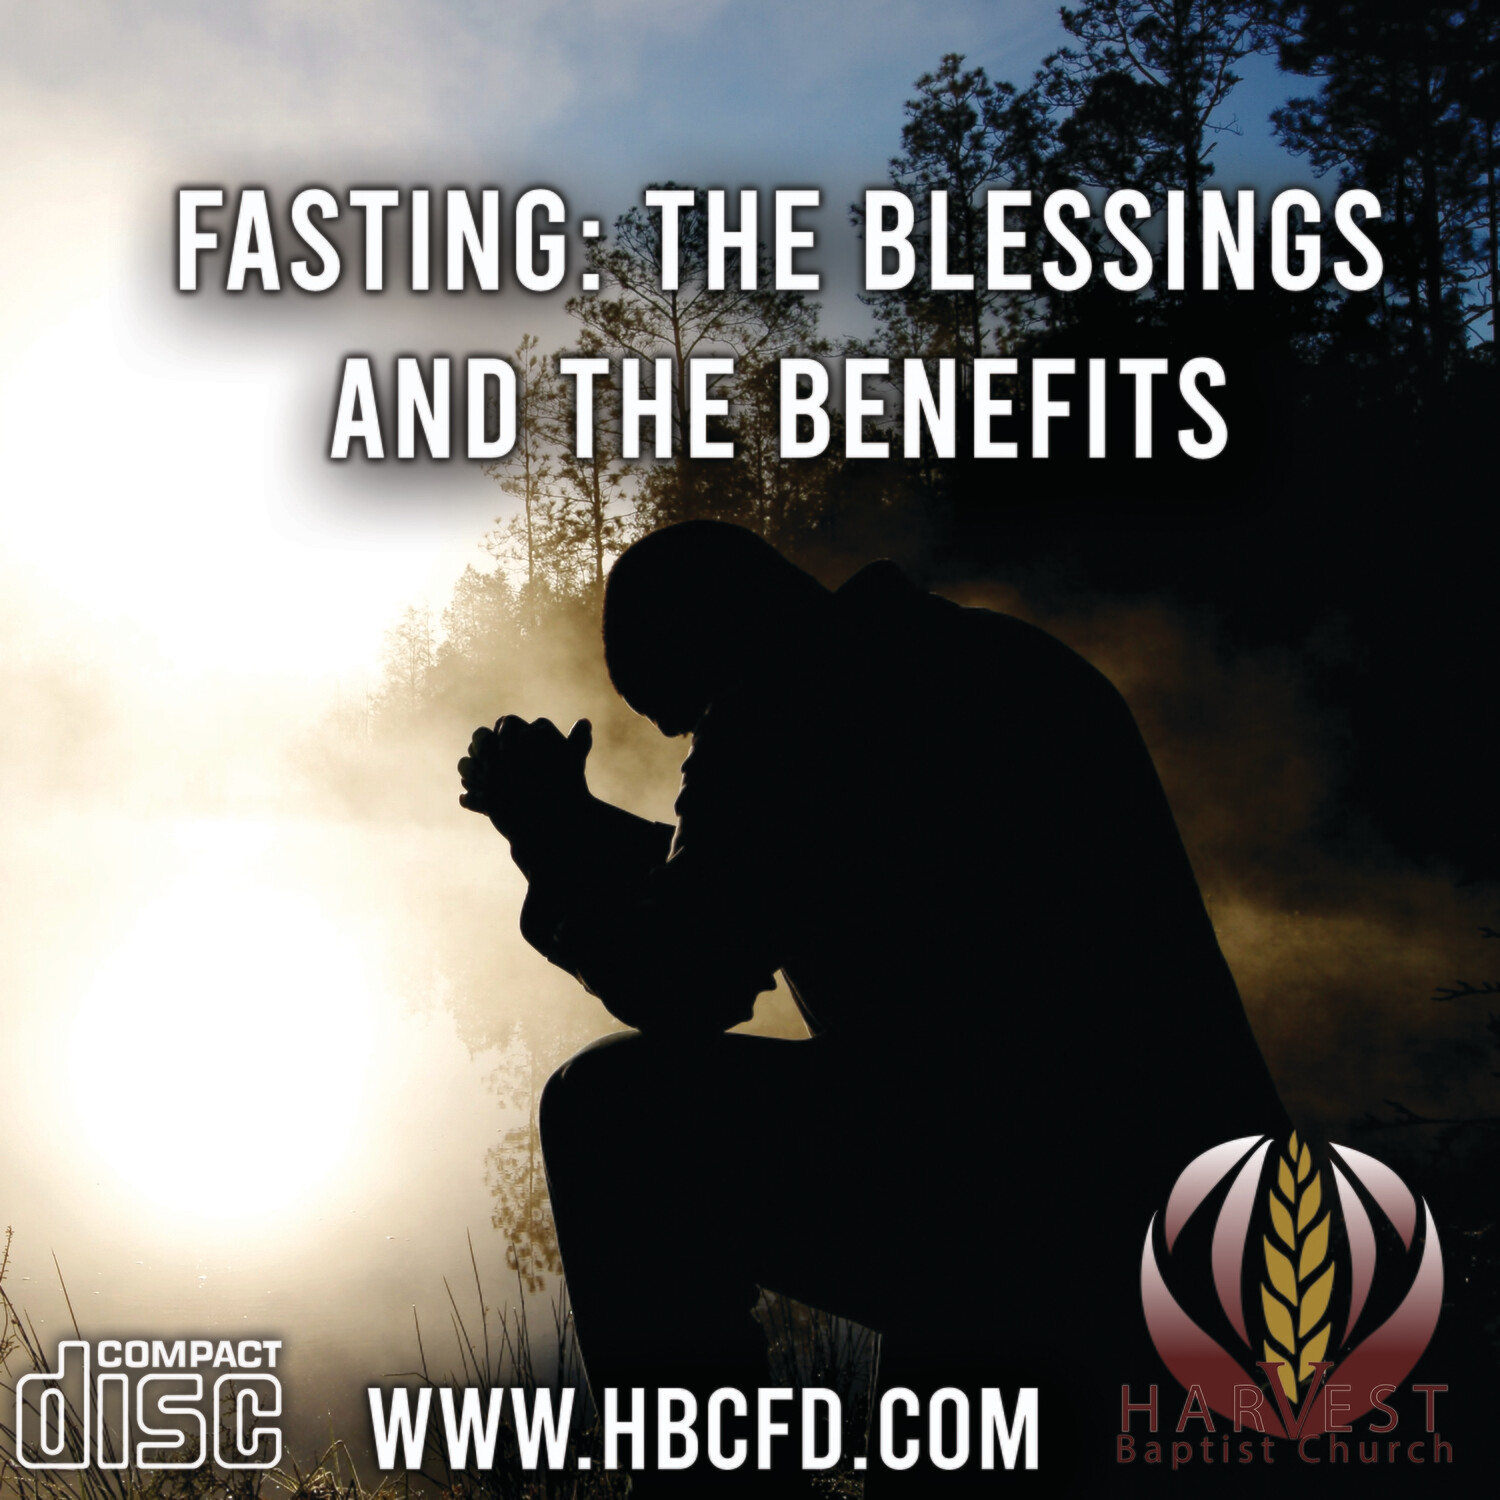 Fasting: The Blessings and Benefits